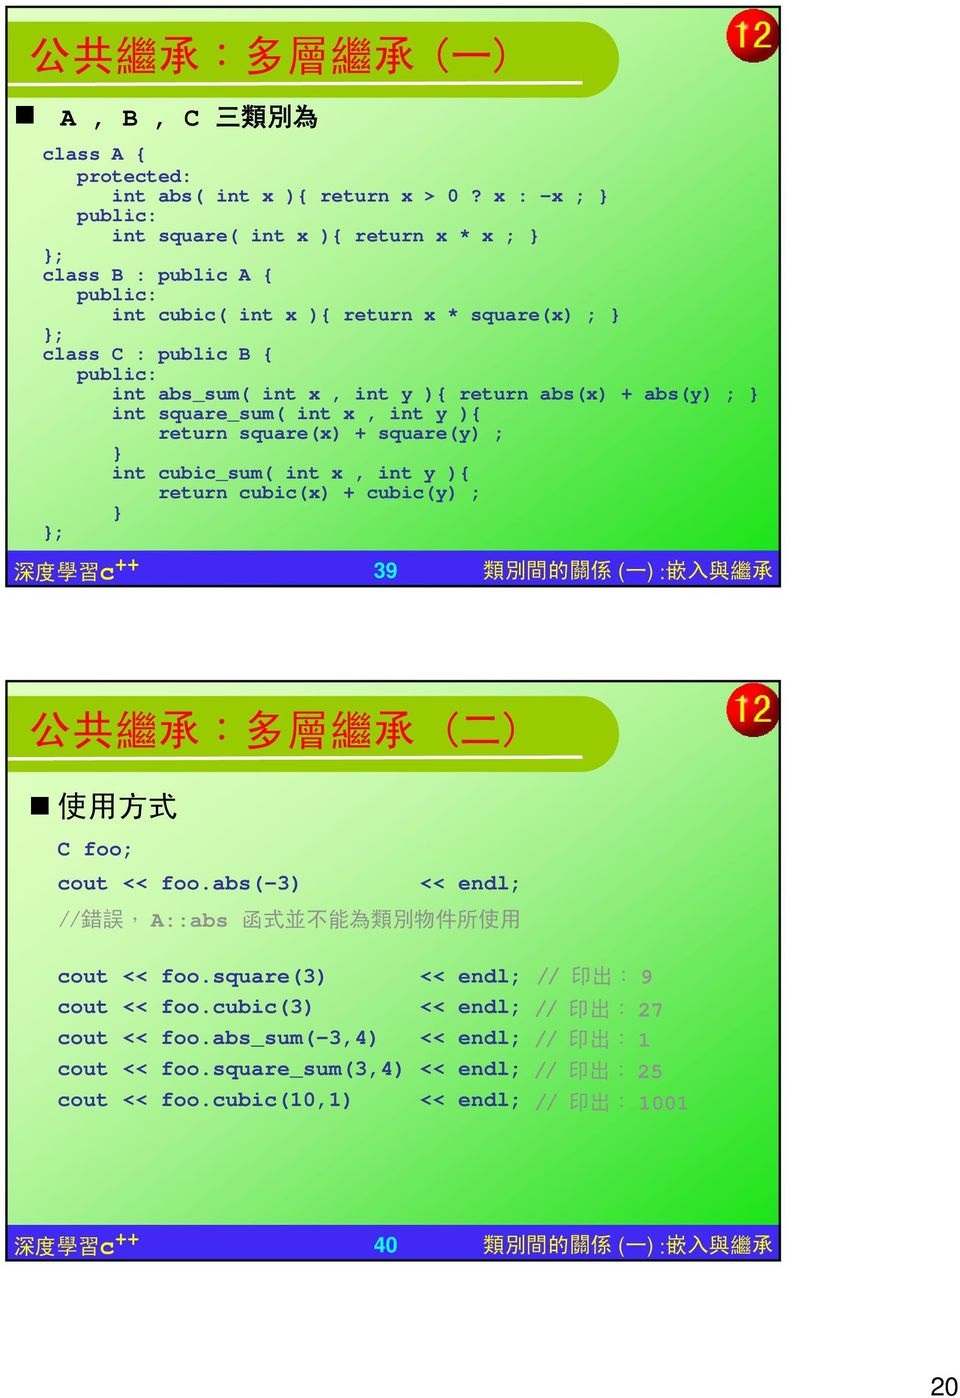 abs(x) + abs(y) ; } int square_sum( int x, int y ){ return square(x) + square(y) ; } int cubic_sum( int x, int y ){ return cubic(x) + cubic(y) ; } 39 類 別 間 的 關 係 ( 一 ) : 嵌 入 與 繼 承 公 共 繼 承 : 多 層 繼 承 (